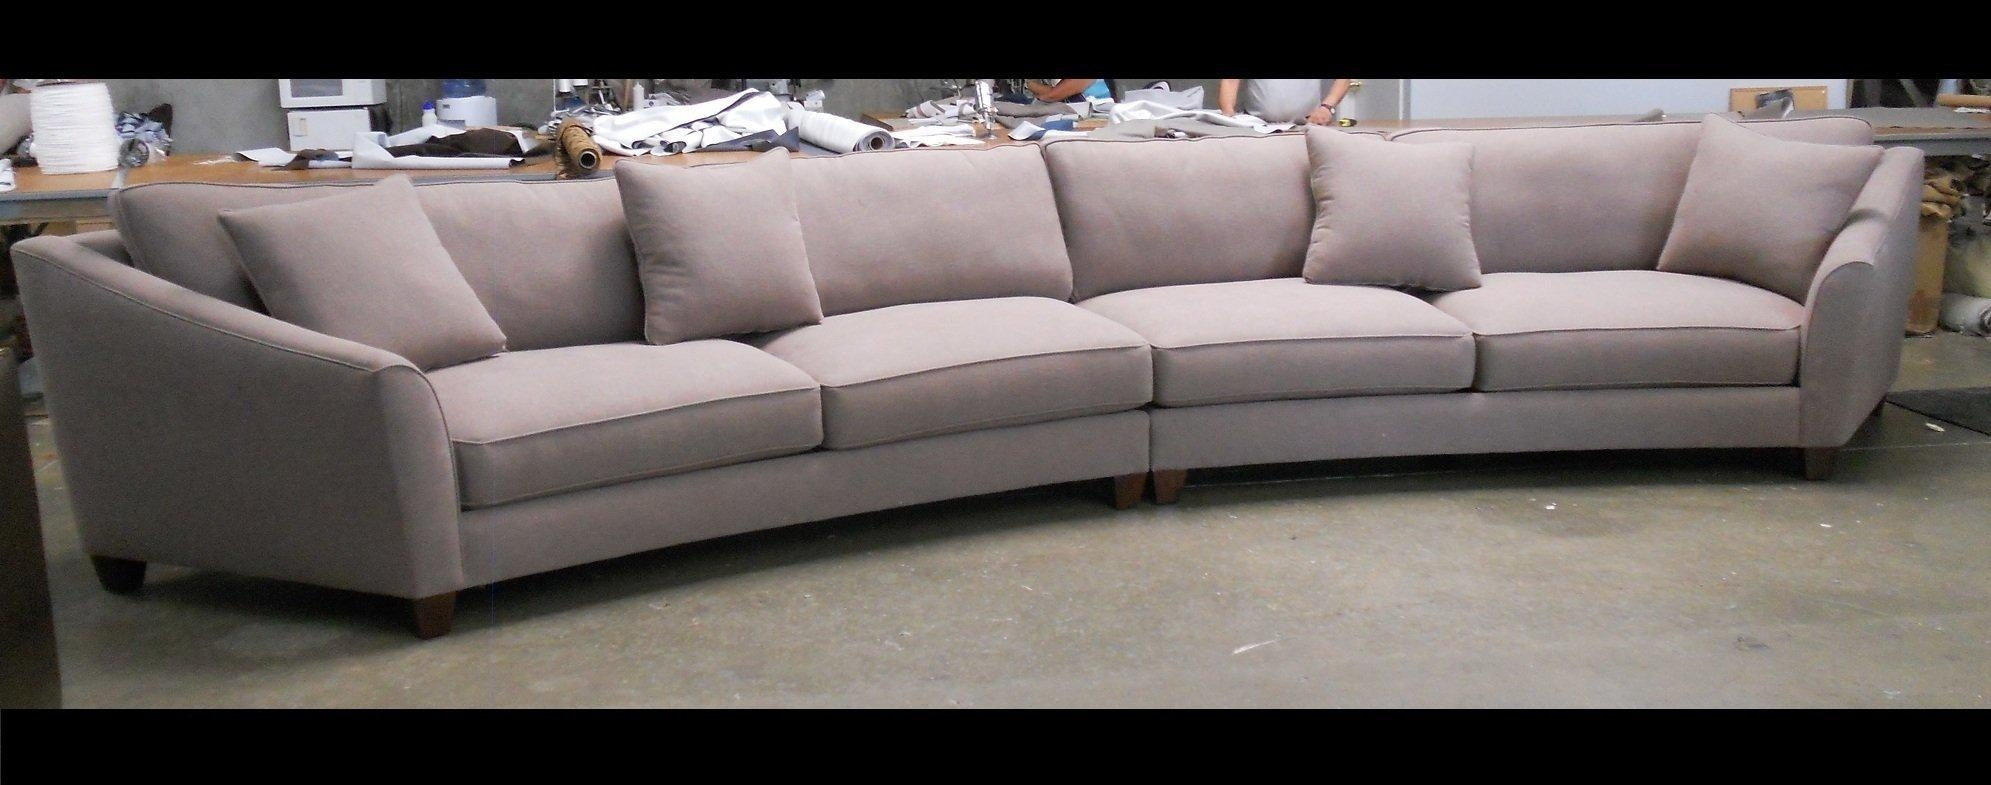 Sofas Center : Rare Roundional Sofa Photos Ideas Rounded L Outdoor In Rounded Sofa (View 6 of 20)